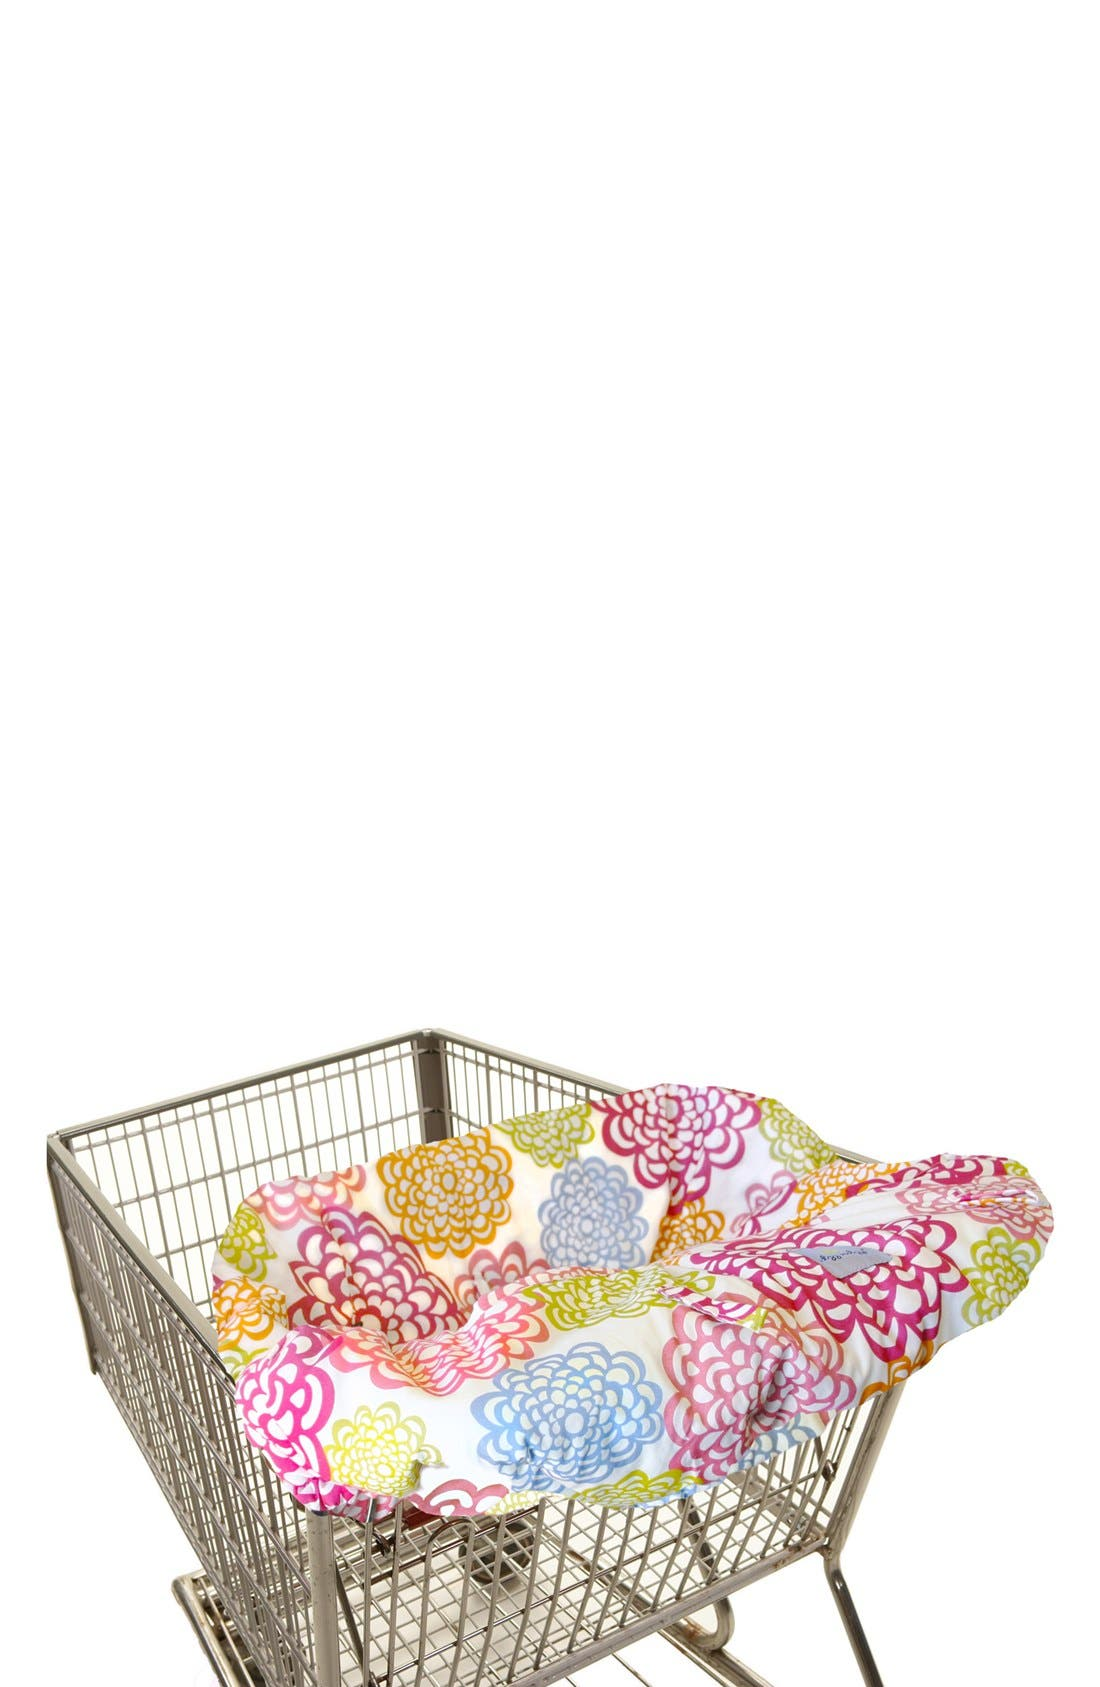 Main Image - Itzy Ritzy Shopping Cart/Highchair Cover